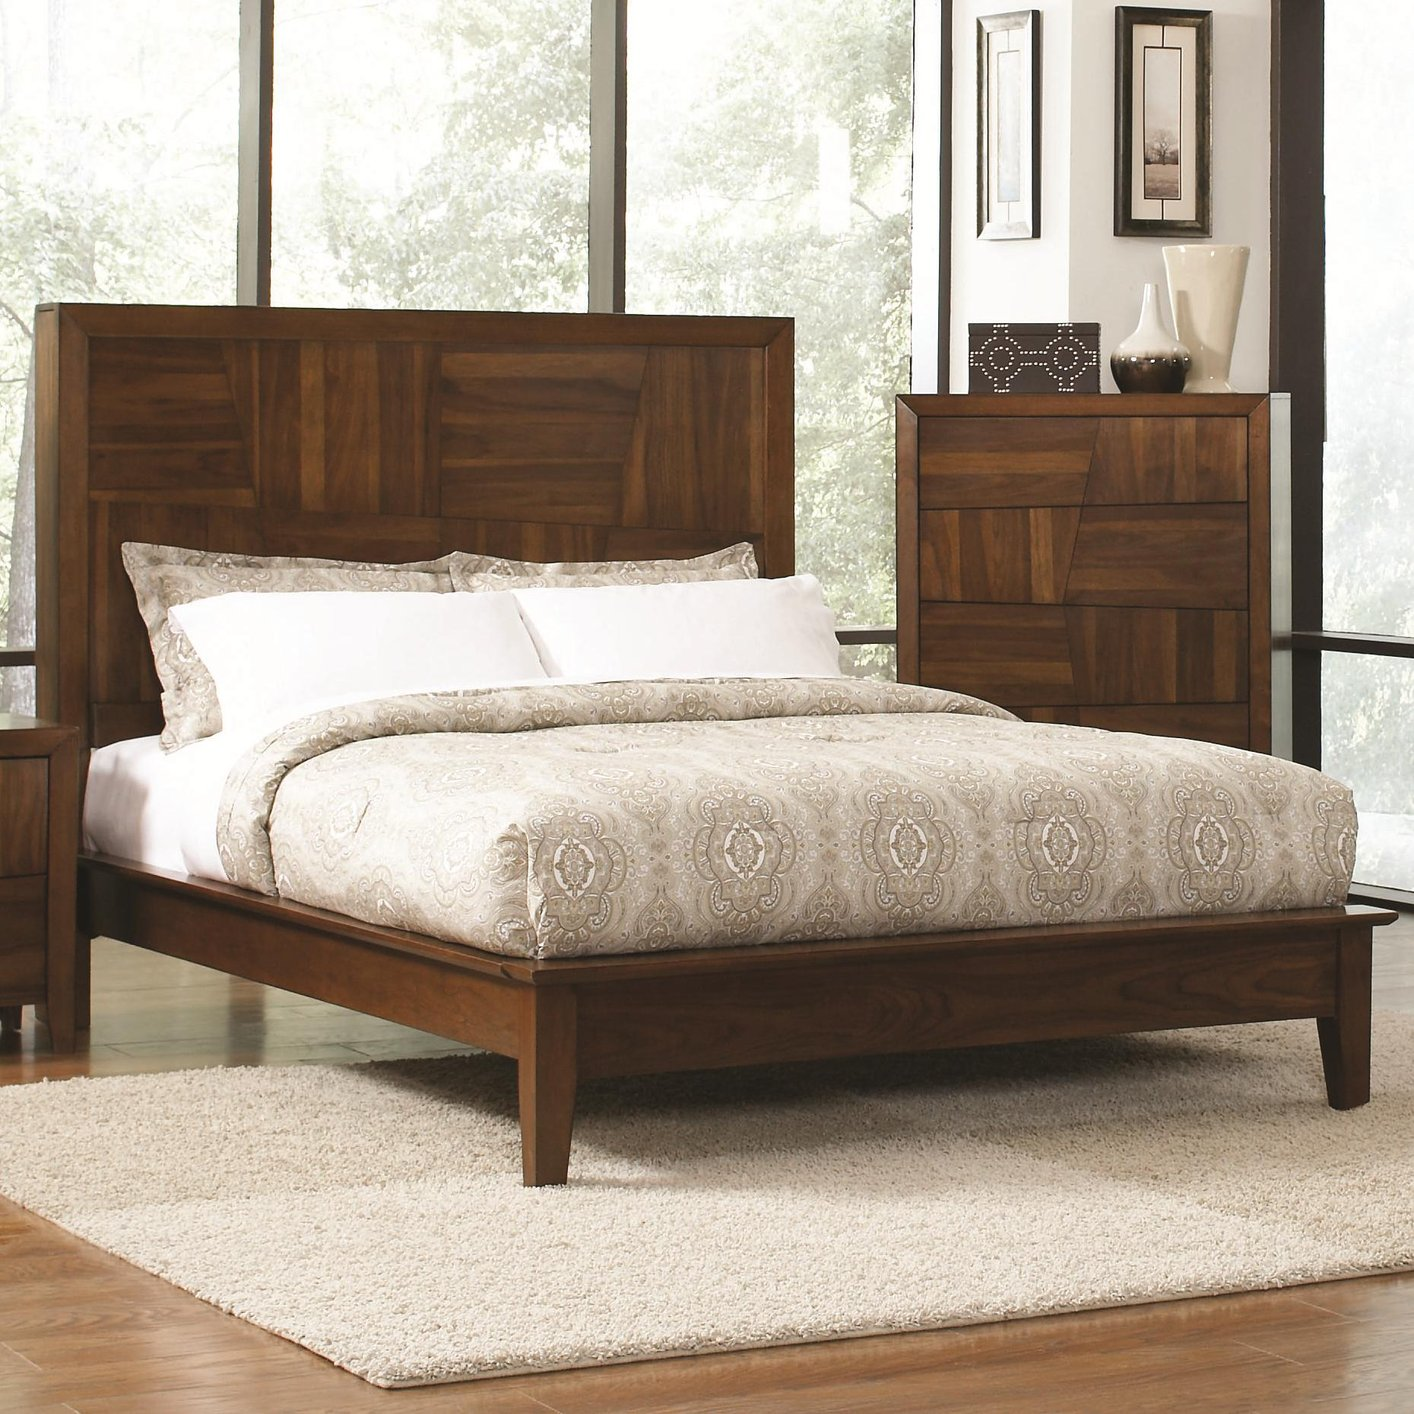 Brown Wood Eastern King Size Bed Steal A Sofa Furniture